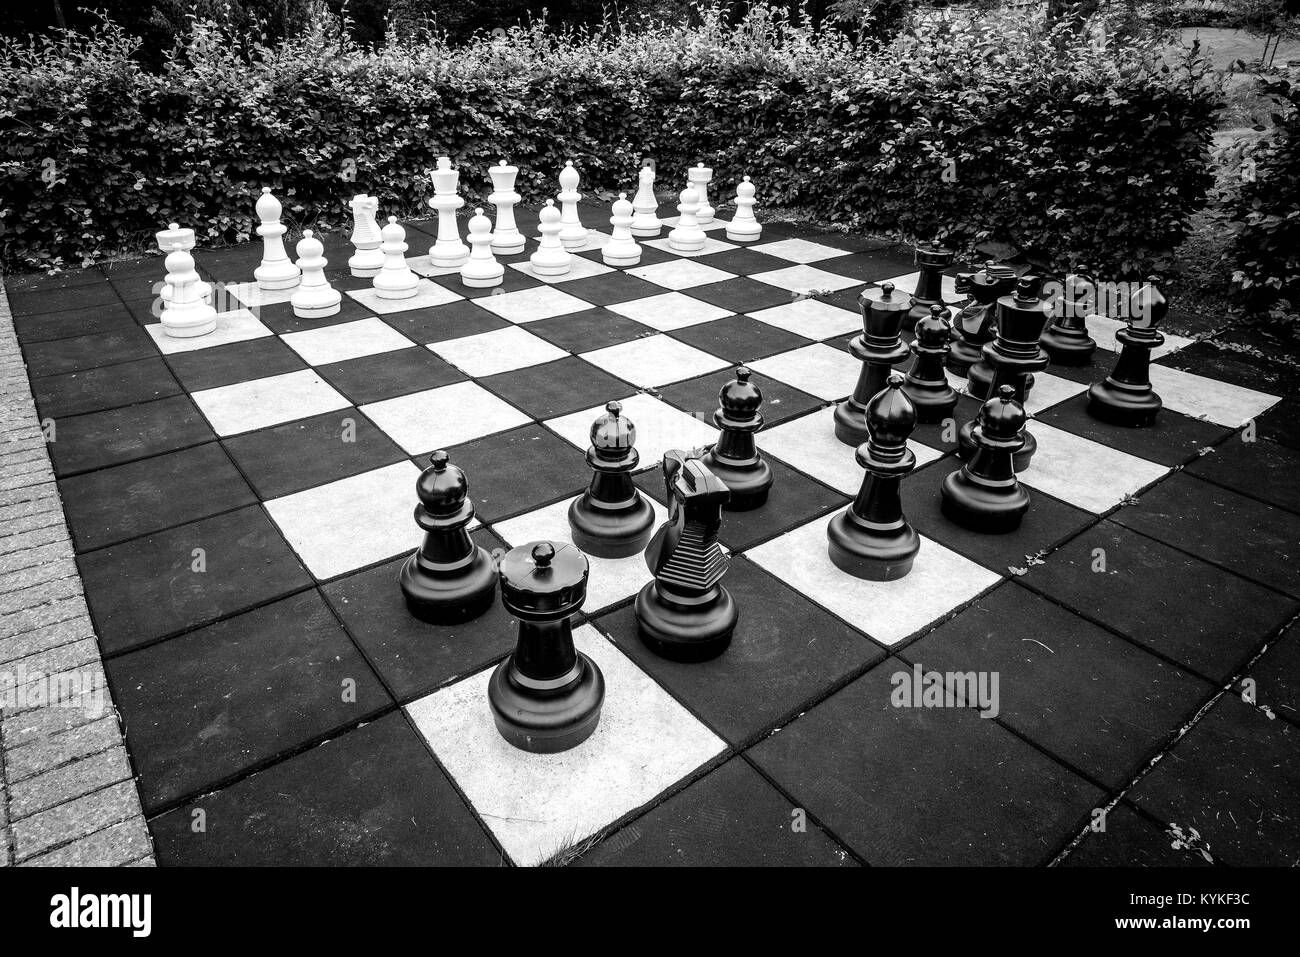 Chess game with large pieces in an outdoor version of the classic game in black and white colors - Stock Image